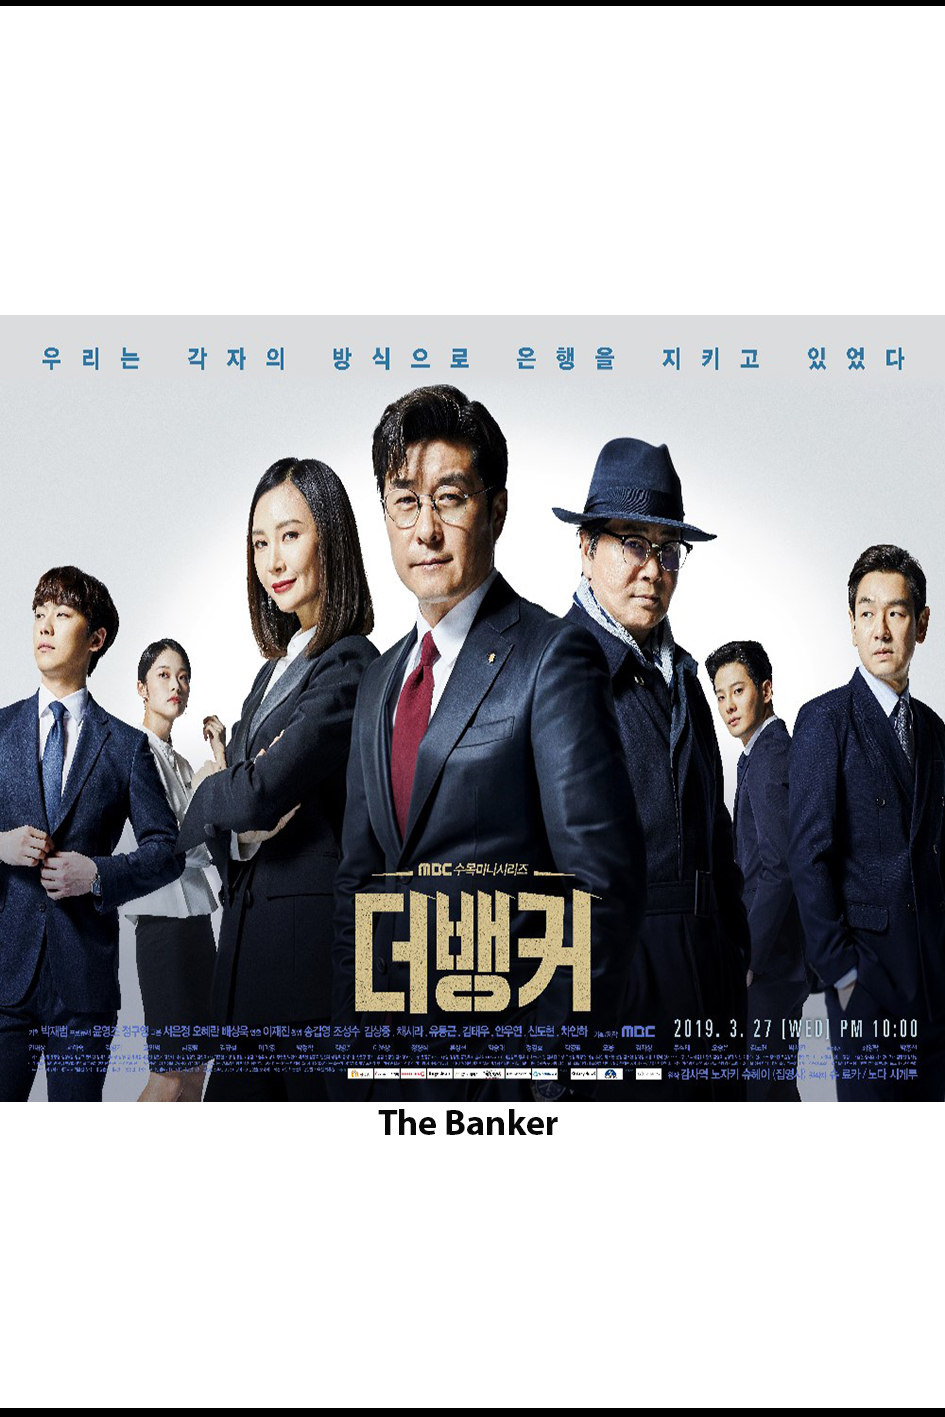 The Banker [2019 South Korea Series] 32 episodes END (4) Drama